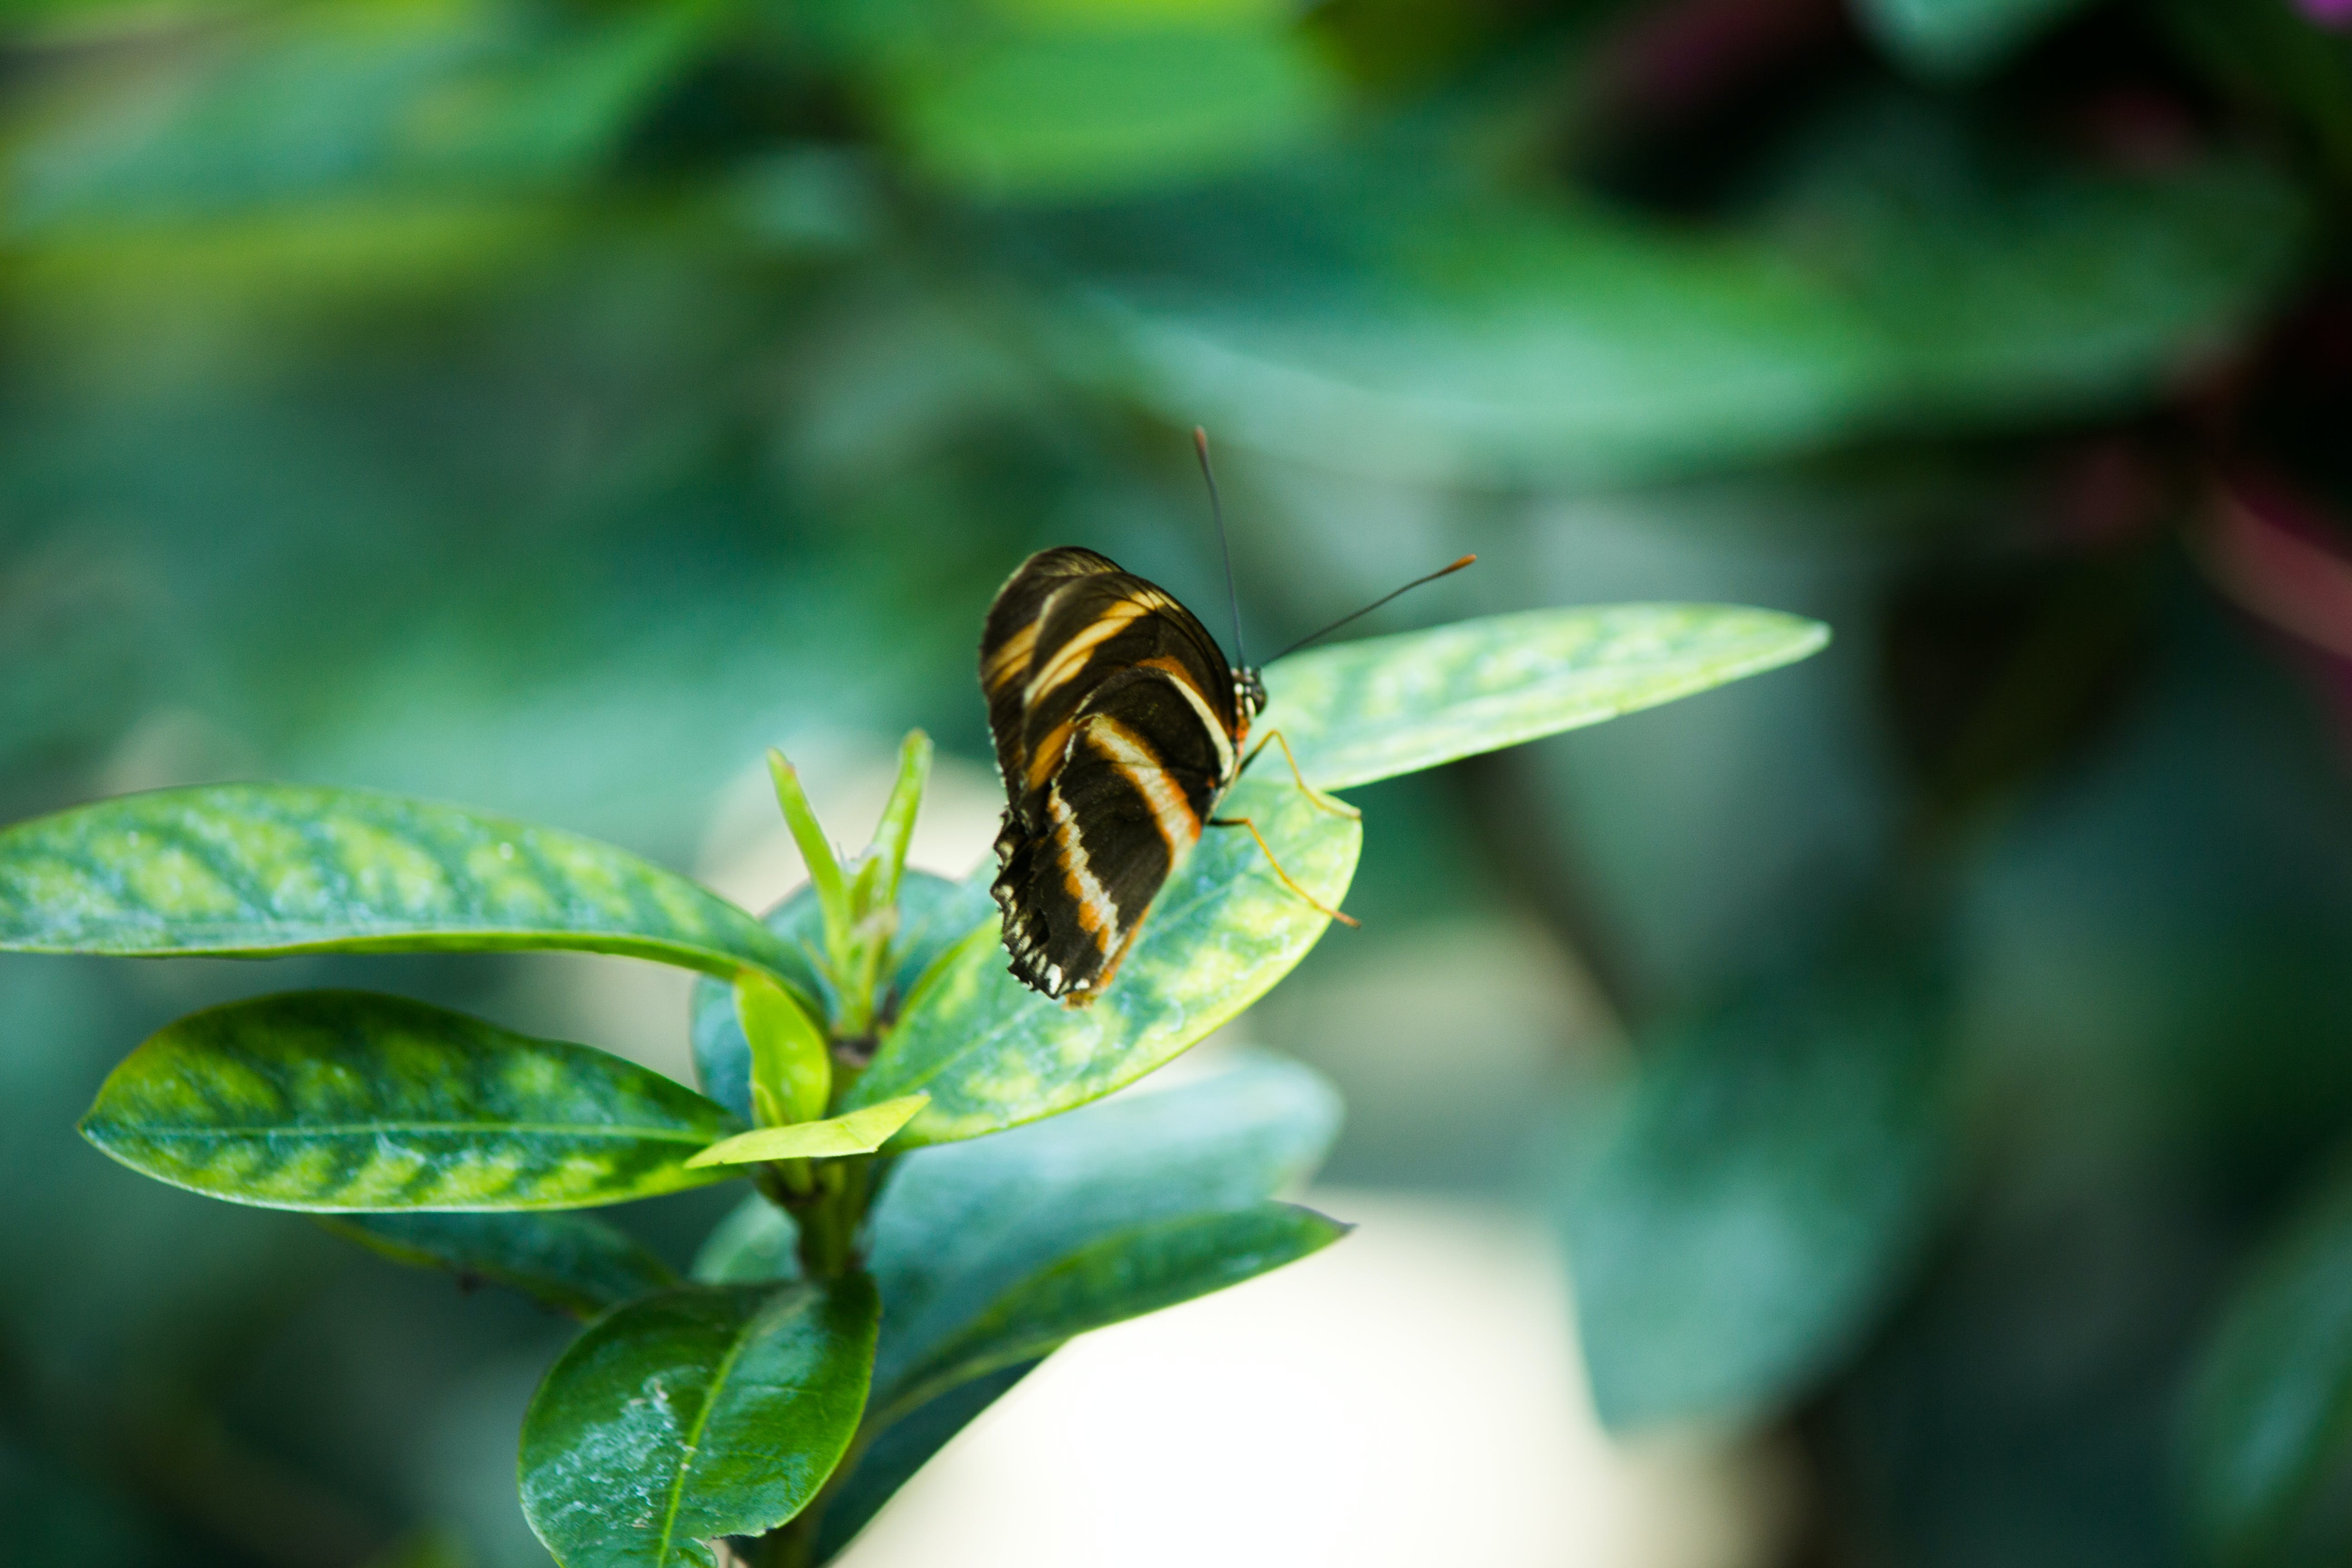 Butterfly on Plant Leaf